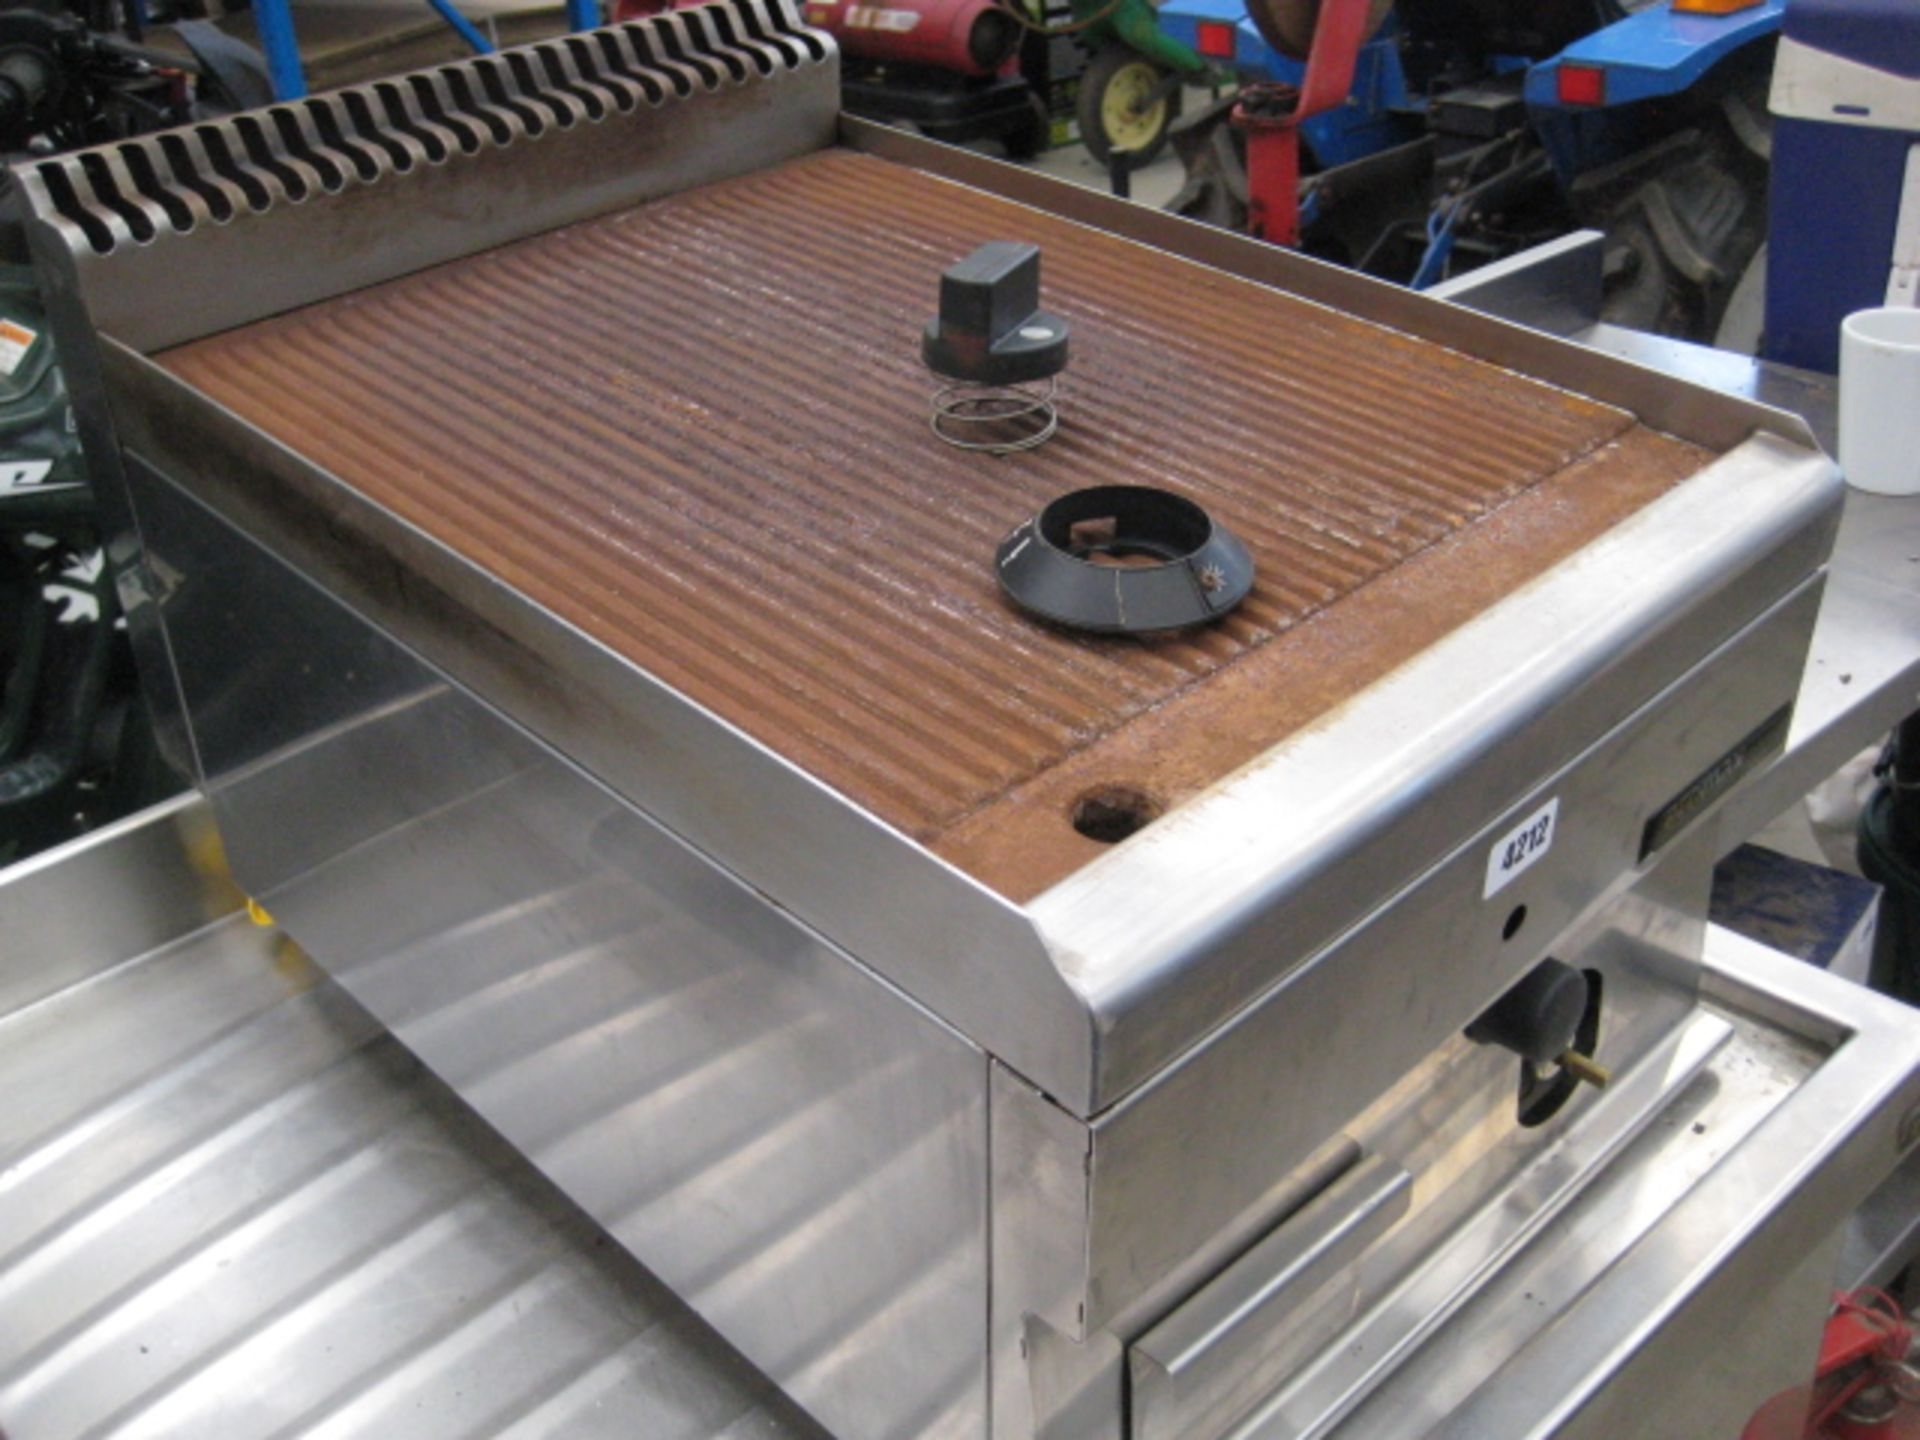 Lot 4212 - Hobart Ecomax gas griddle